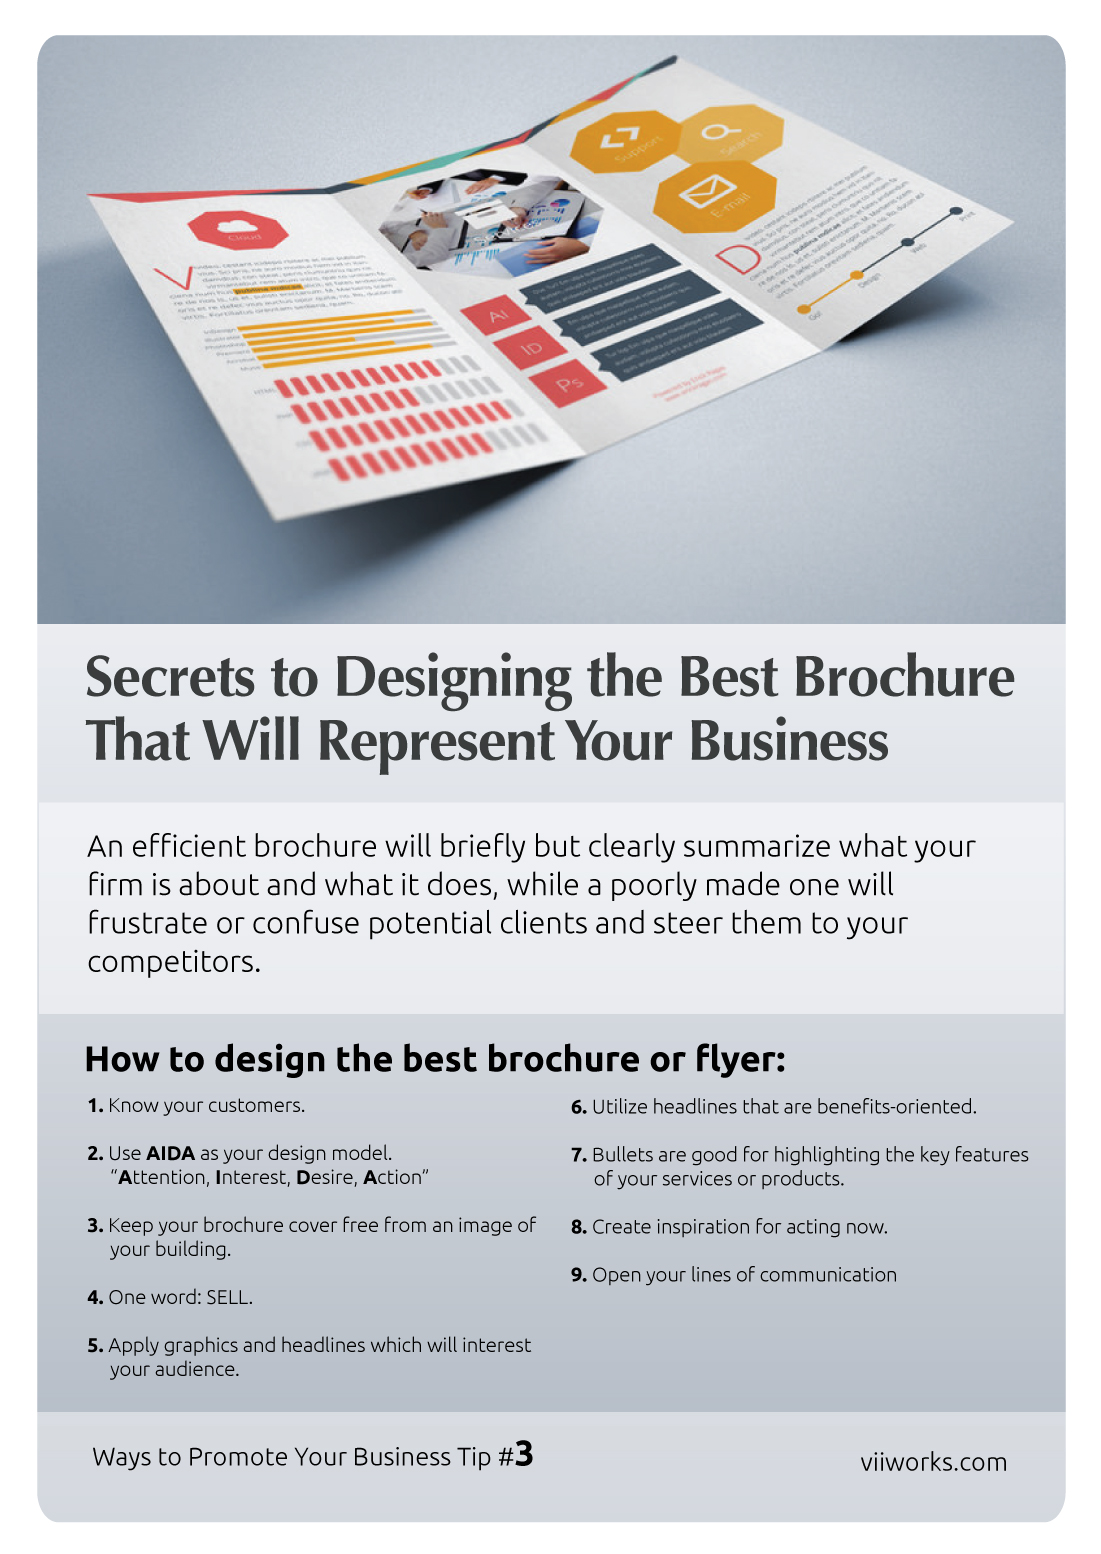 Card - Secrets to Designing the Best Brochure That Will Represent Your Business